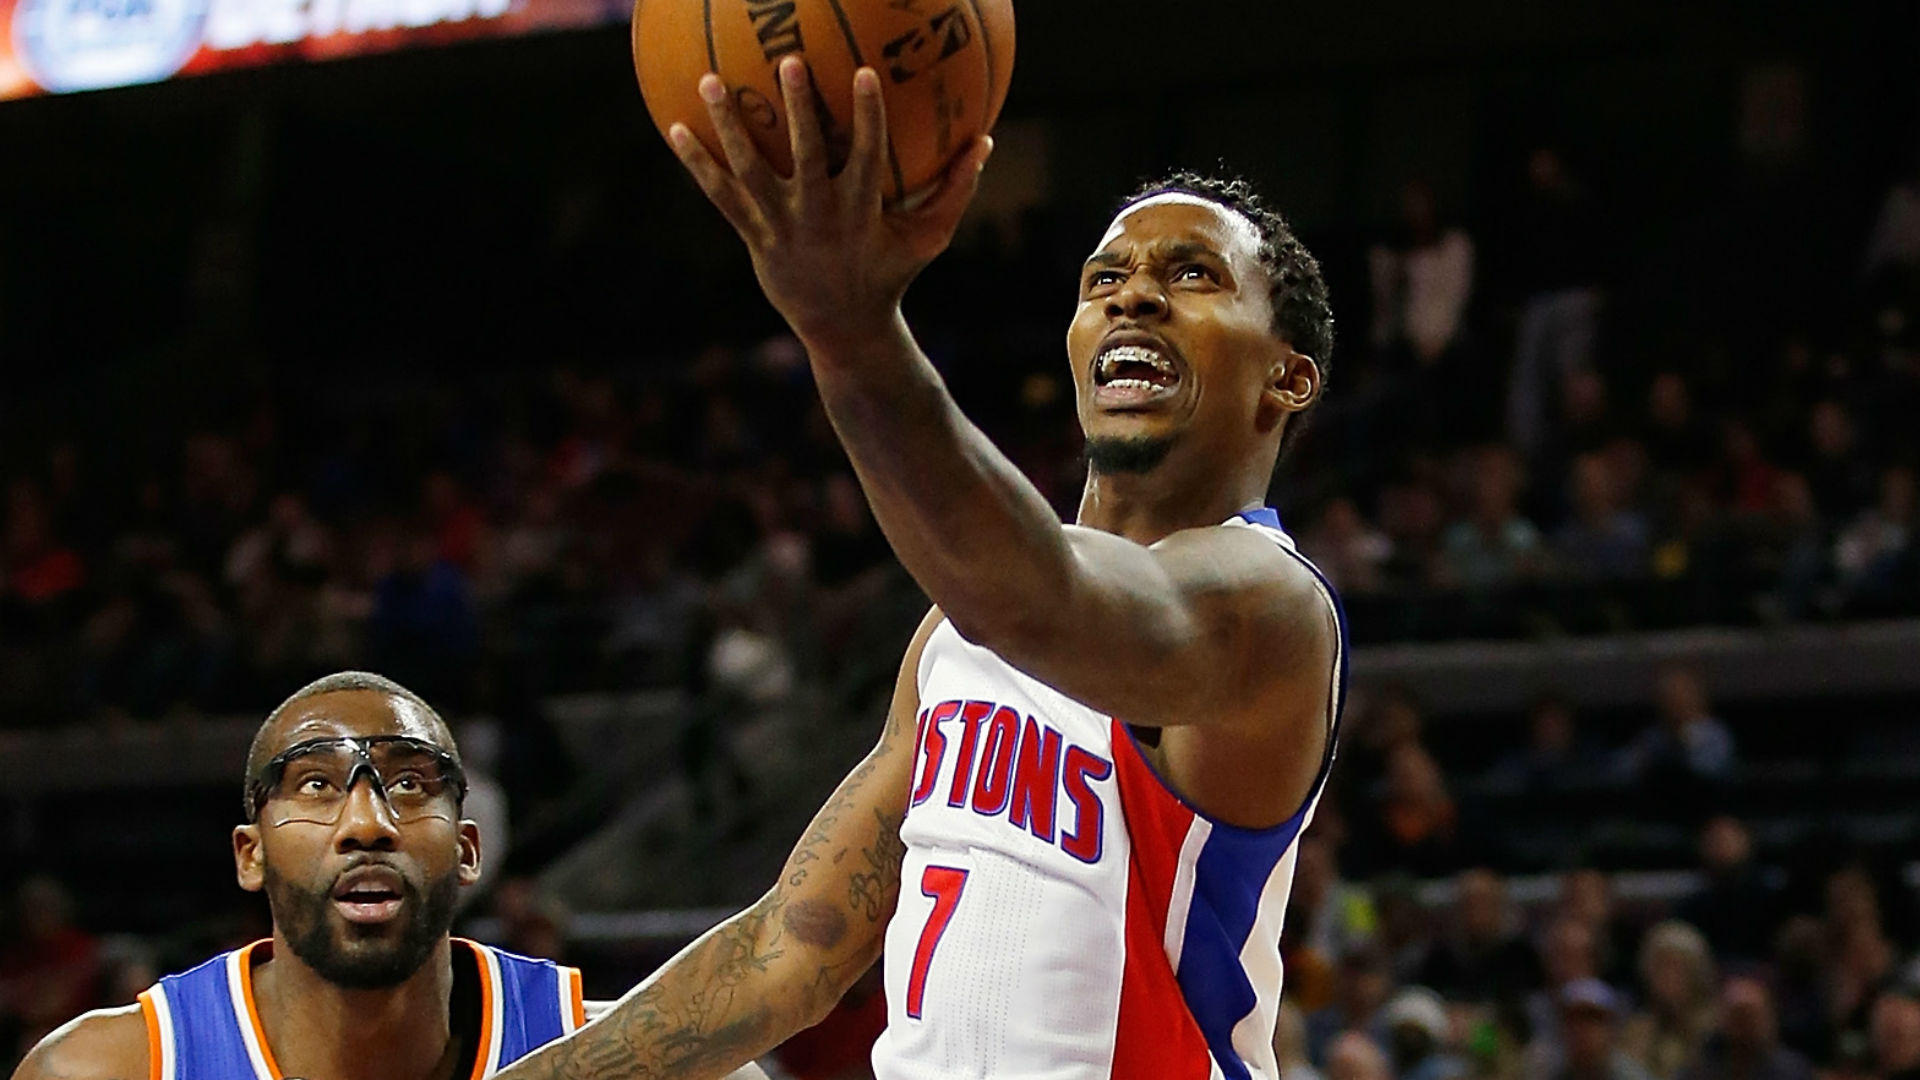 AccuScore NBA pick - Pistons put pair of streaks on the line in Milwaukee